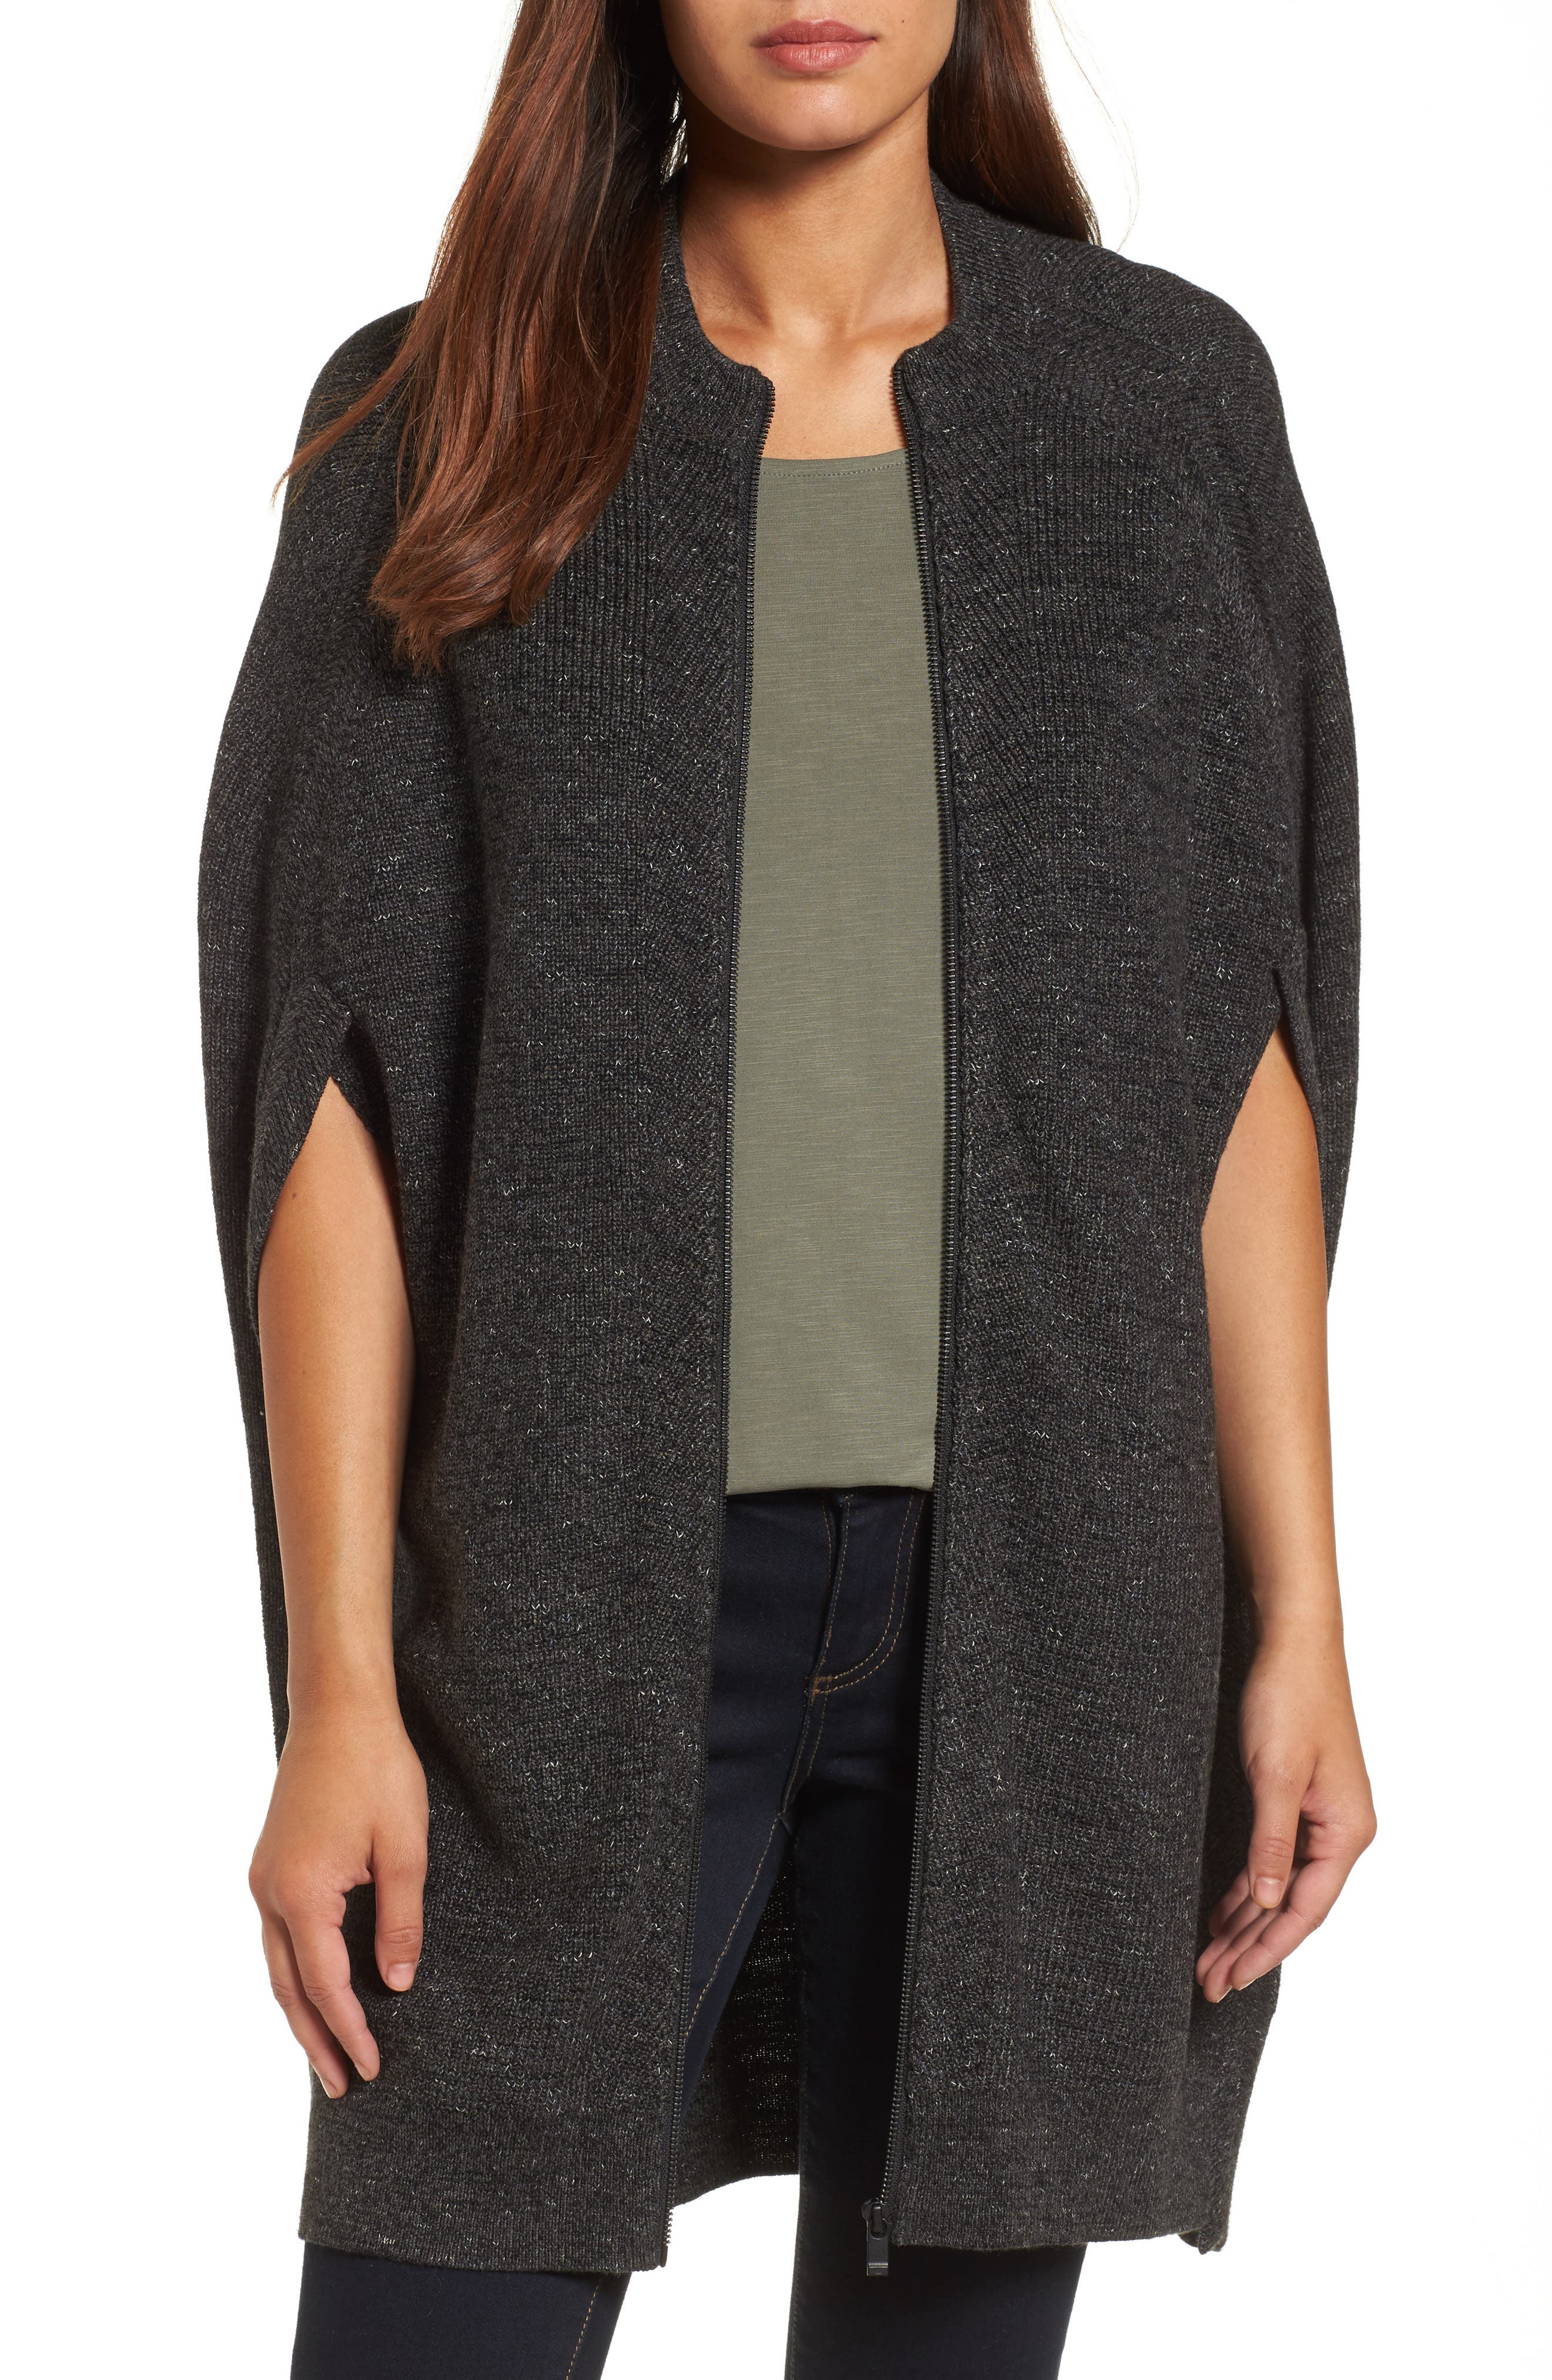 NIC + ZOE Blanket Cape,                         Main,                         color, 004